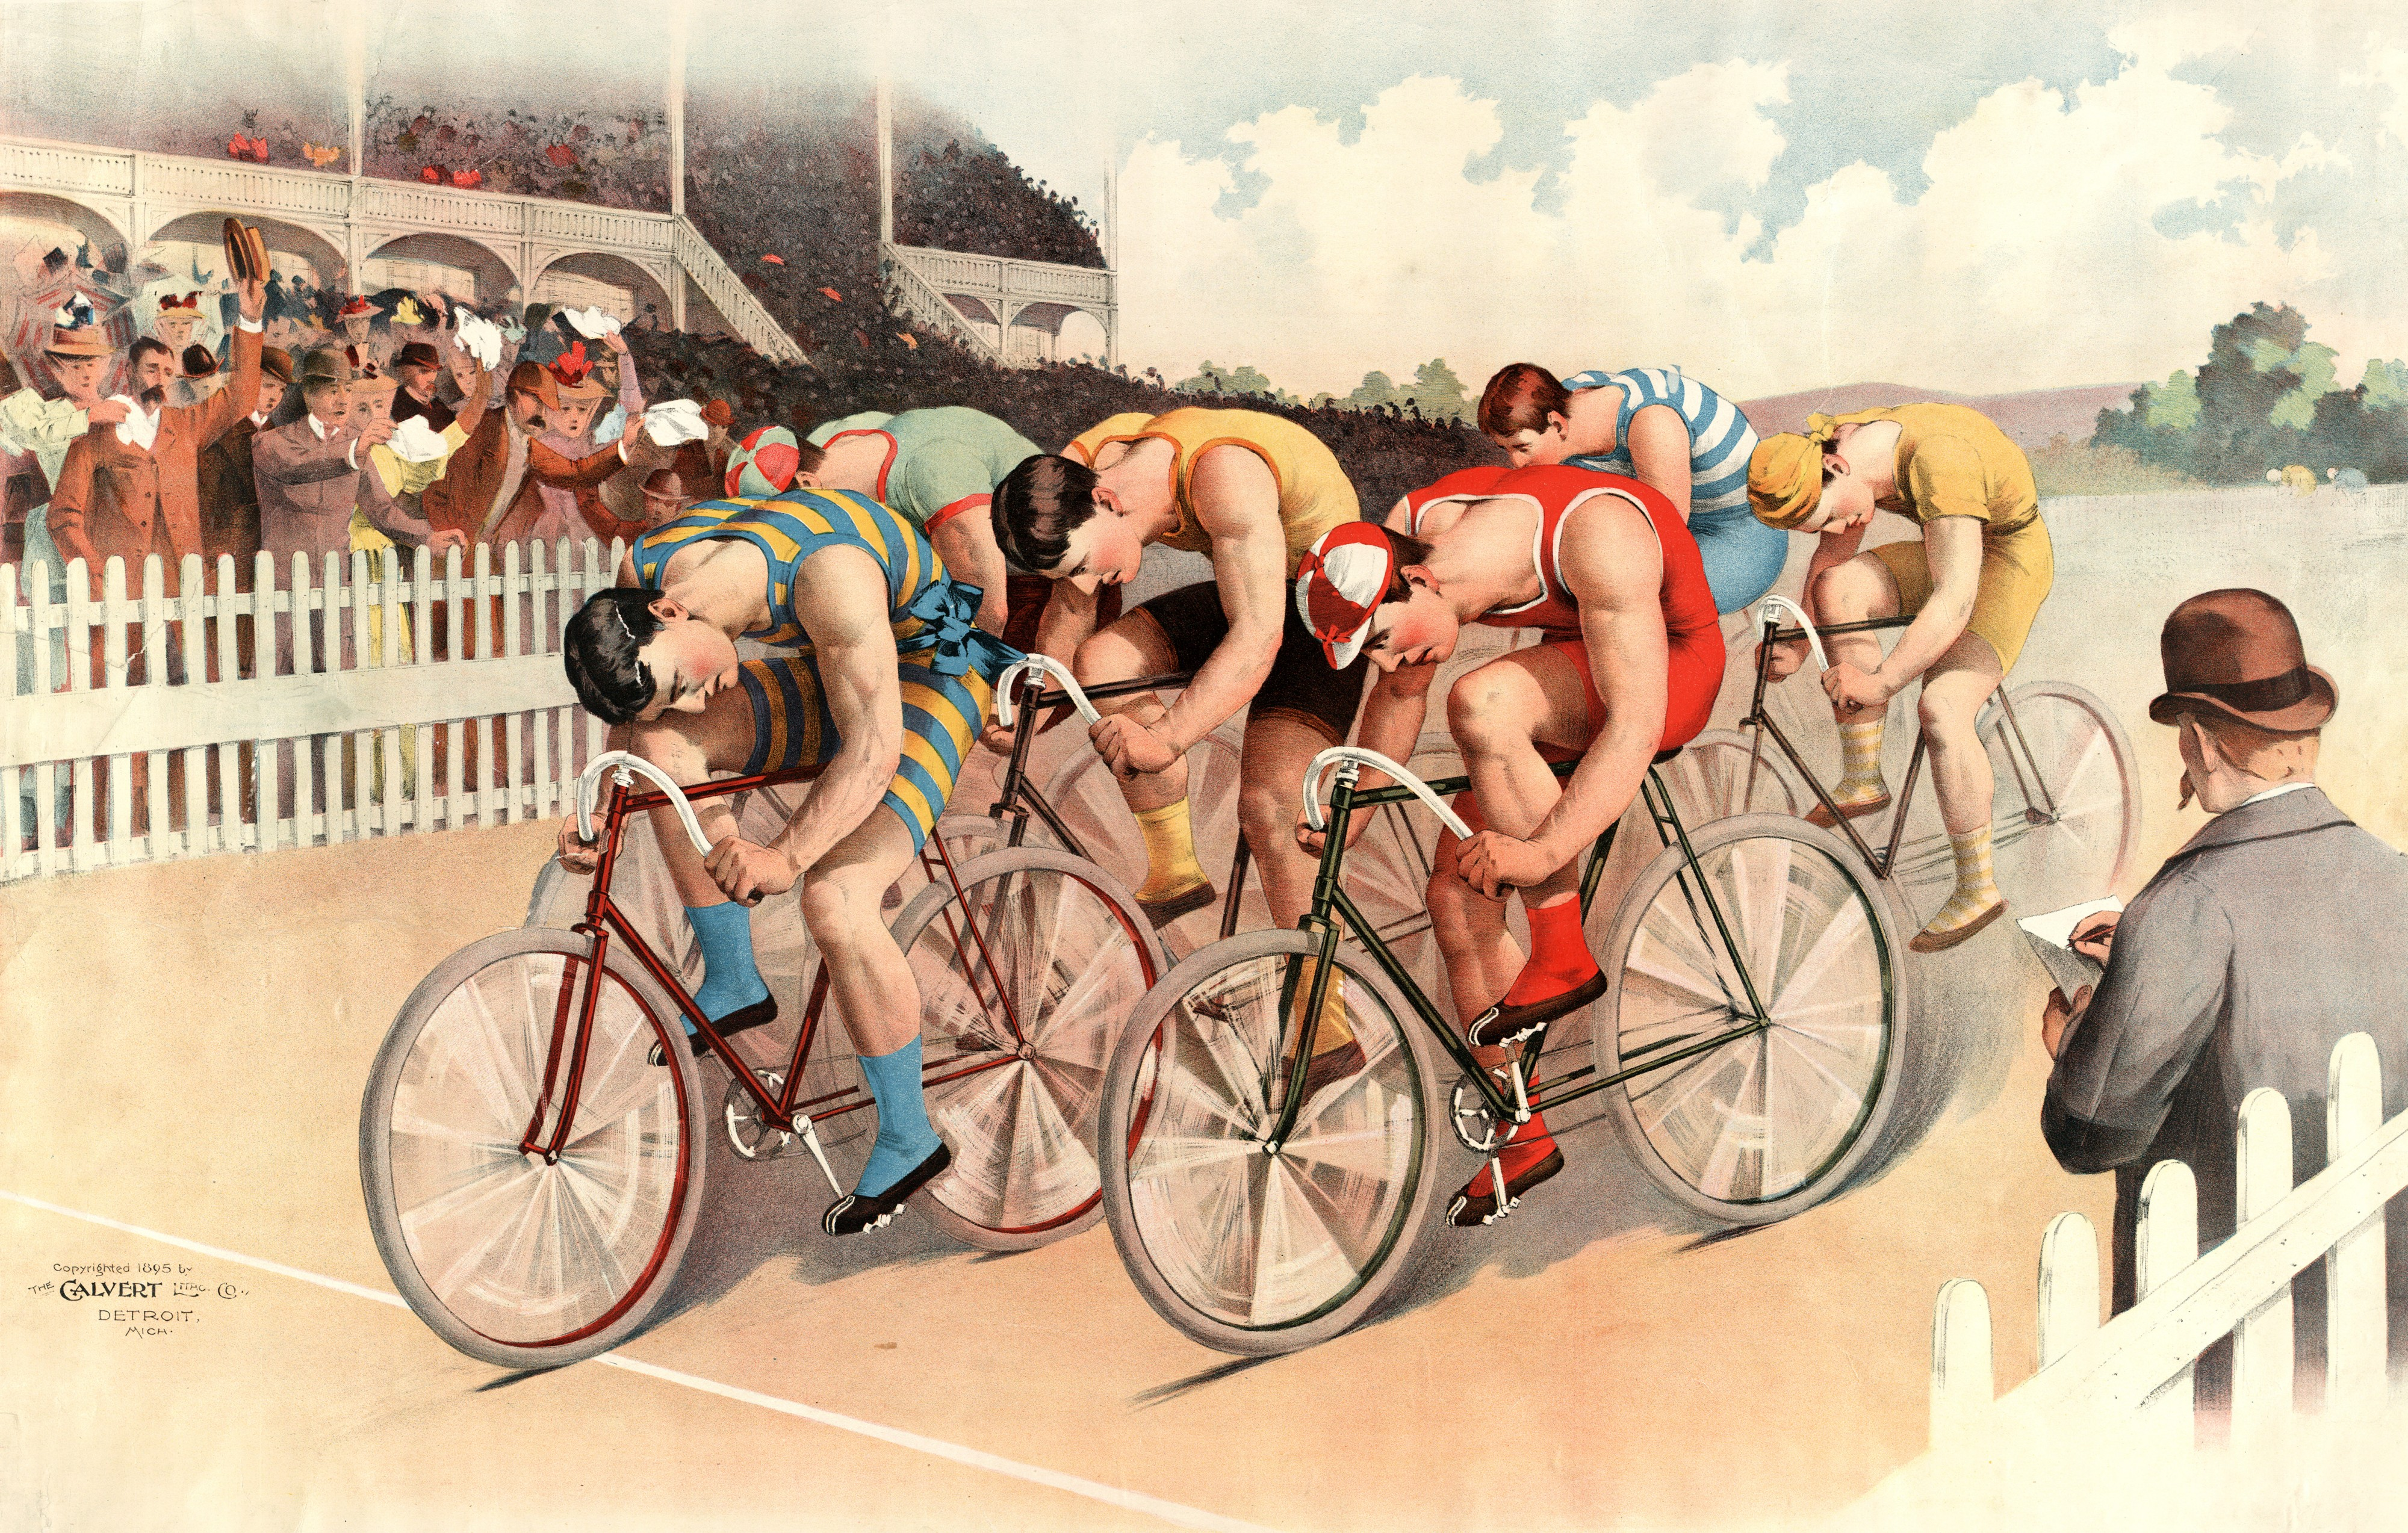 Bicycle race scene, 1895